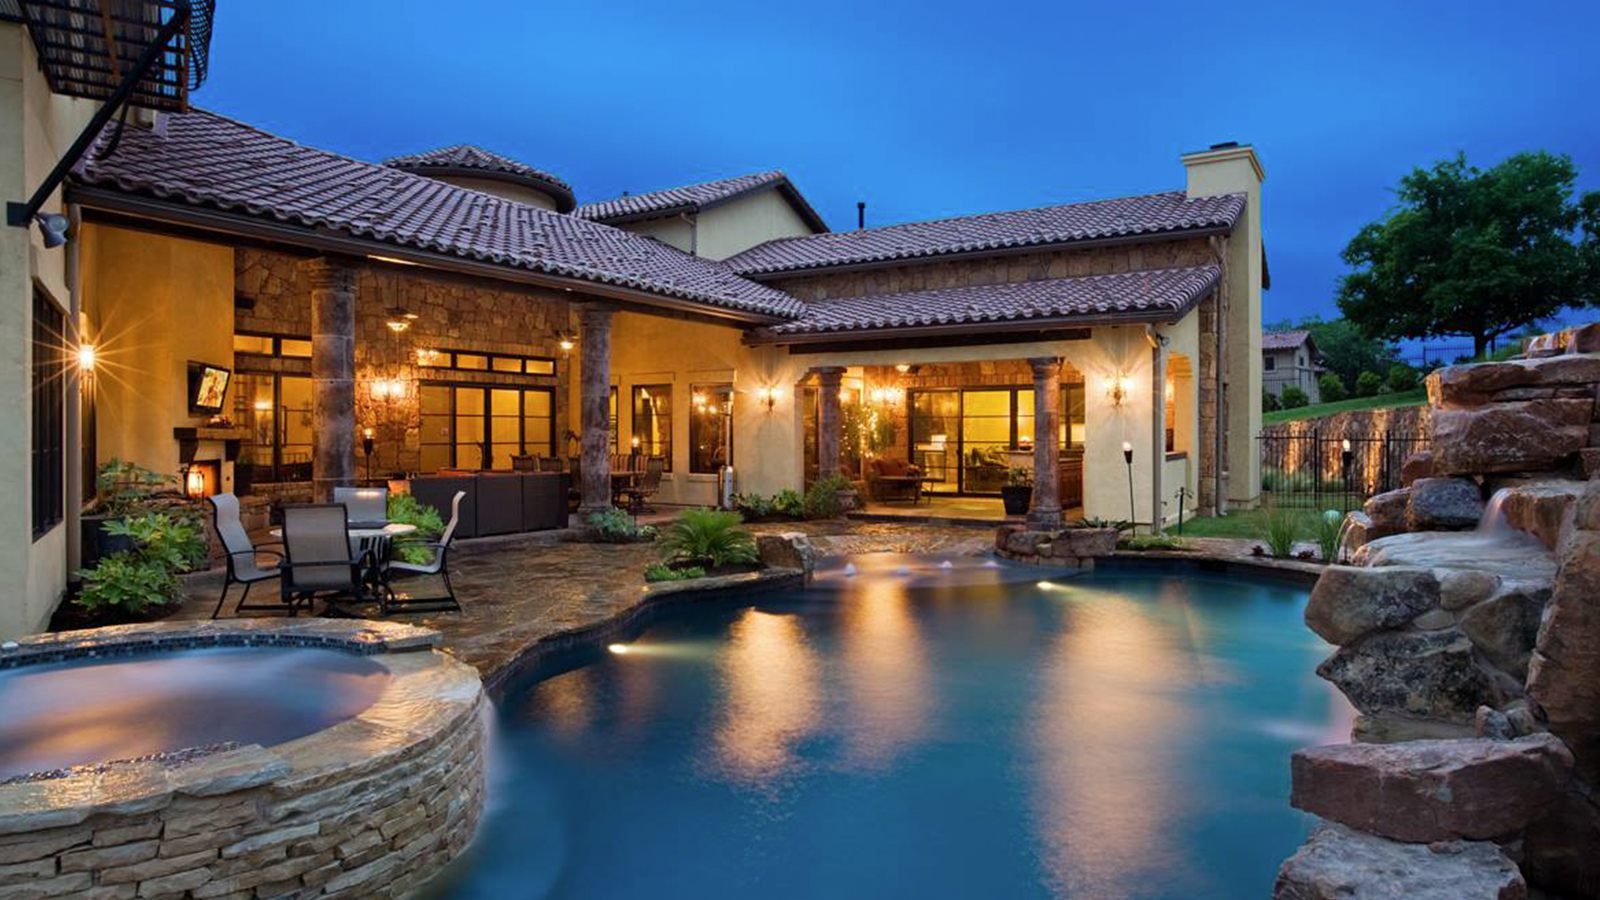 NuVision Pools image 5